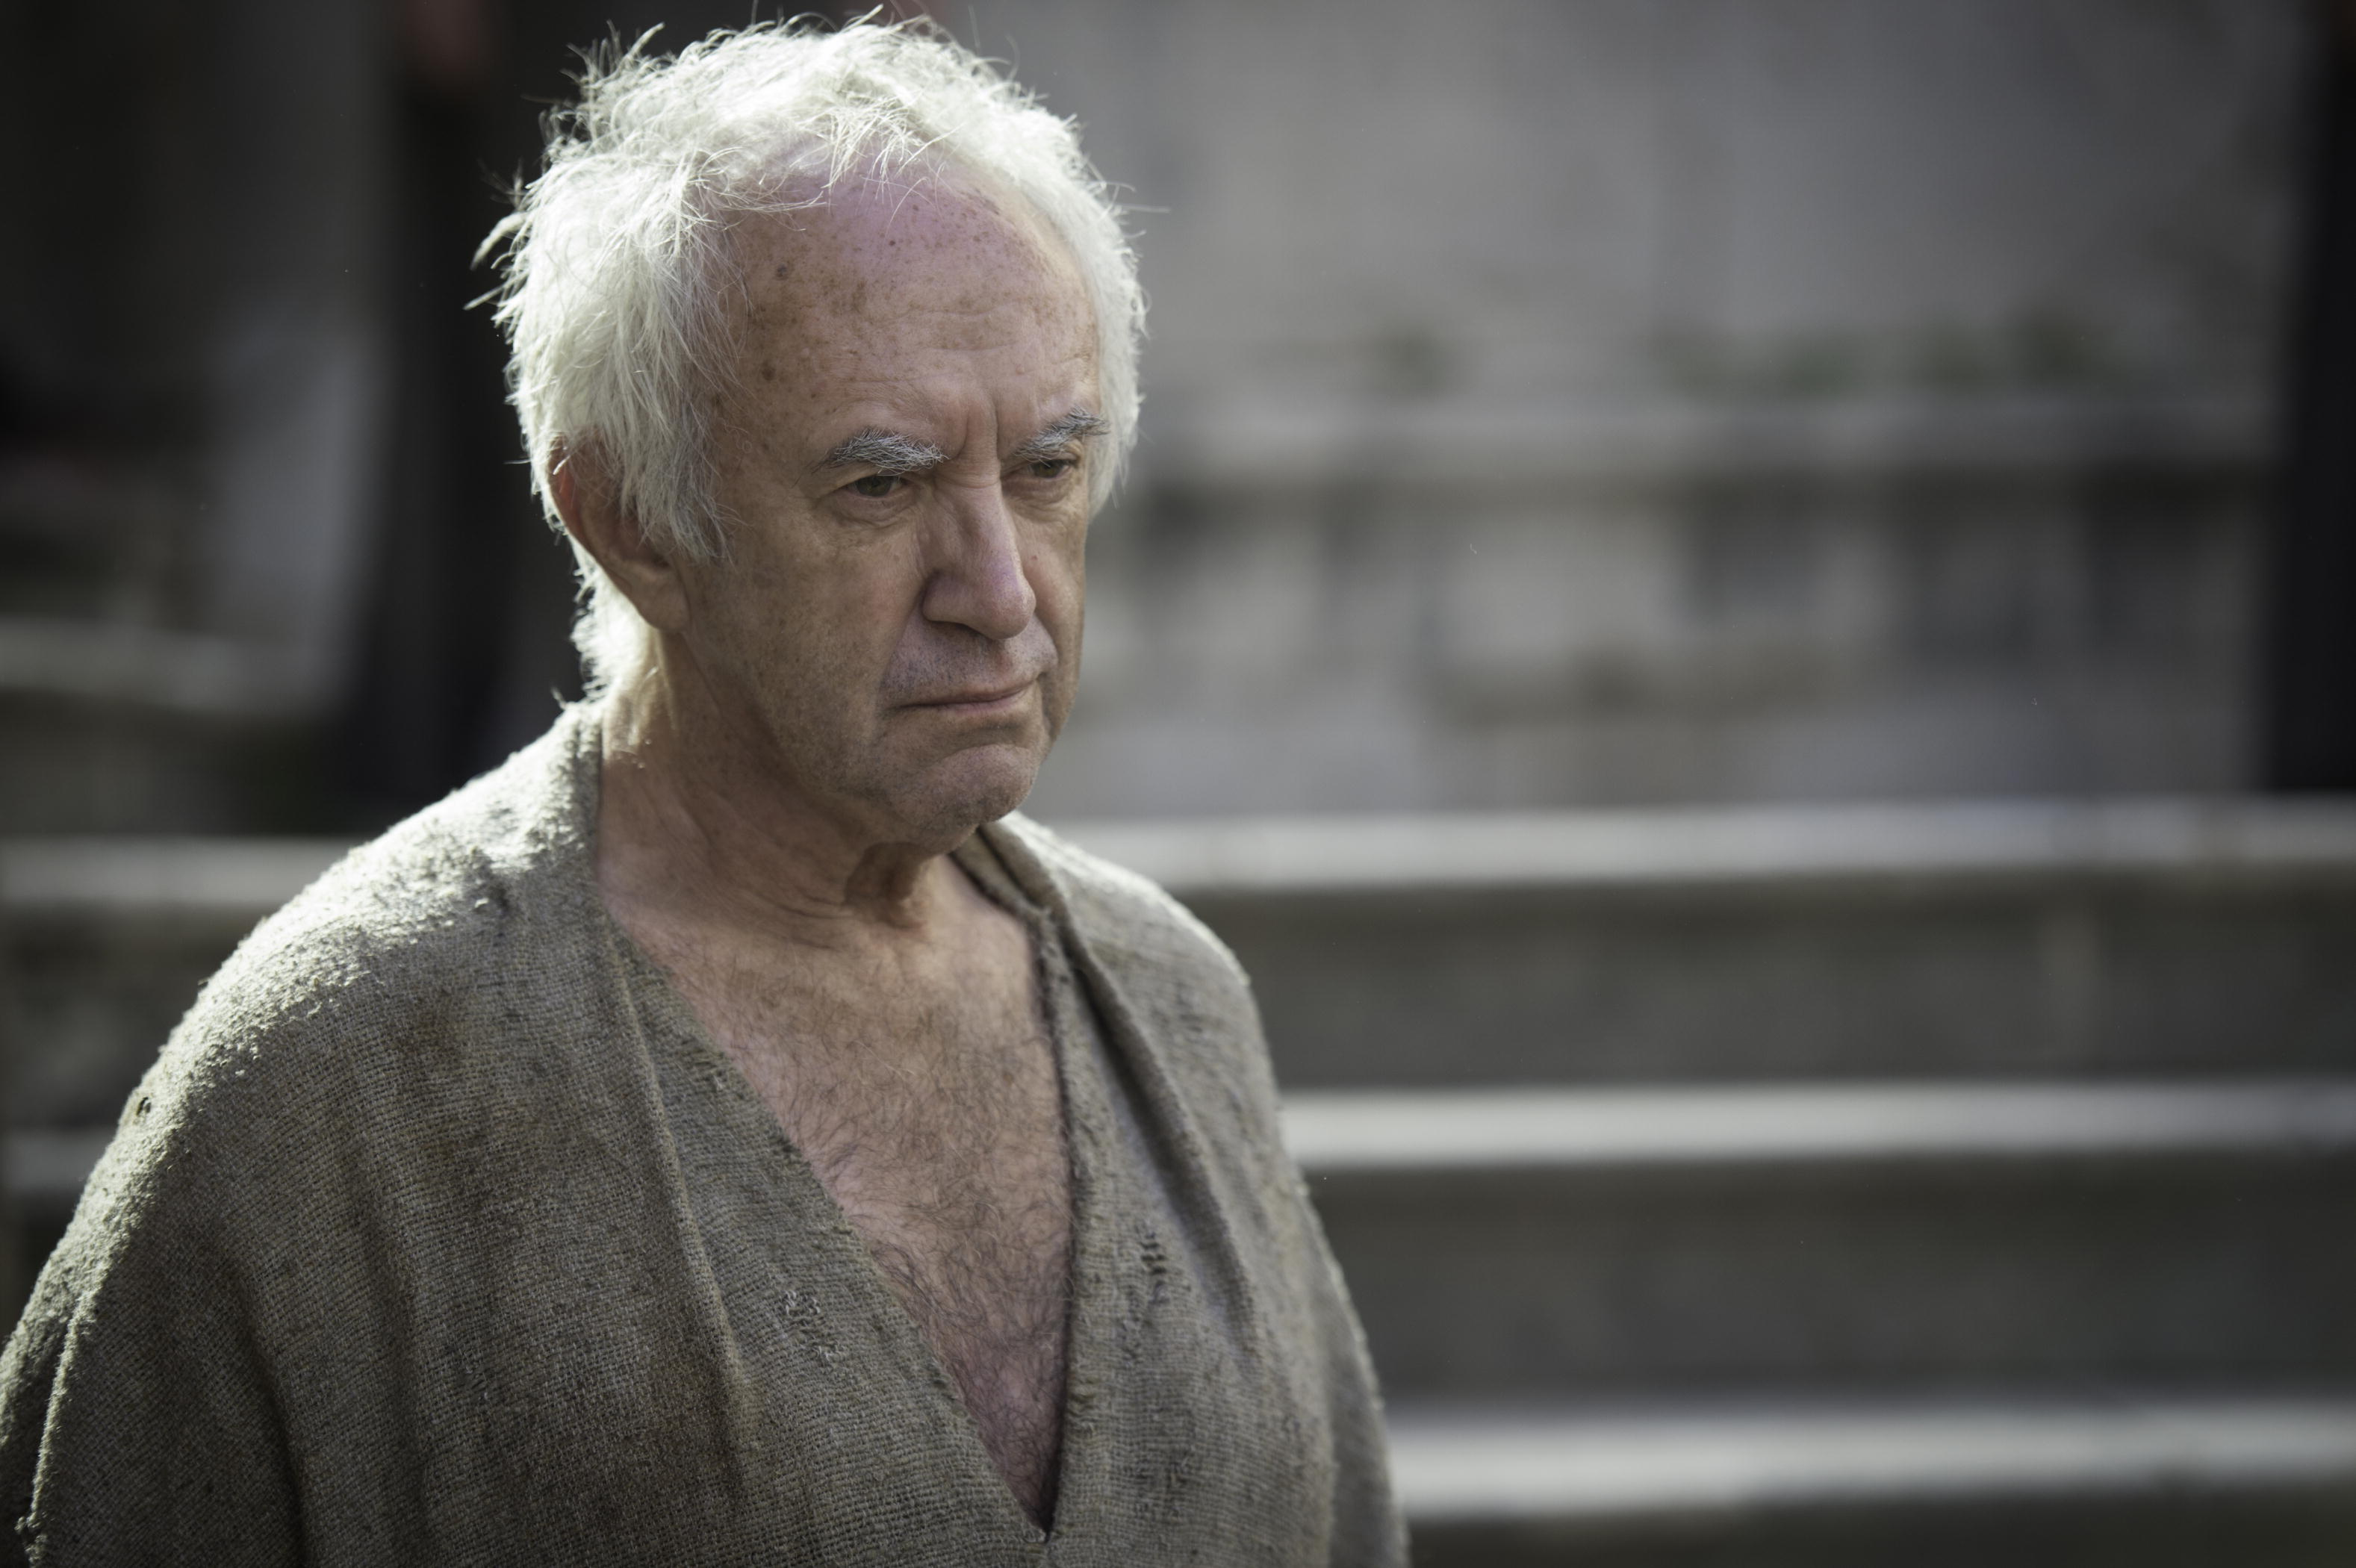 3 - Game of Thrones - High Sparrow